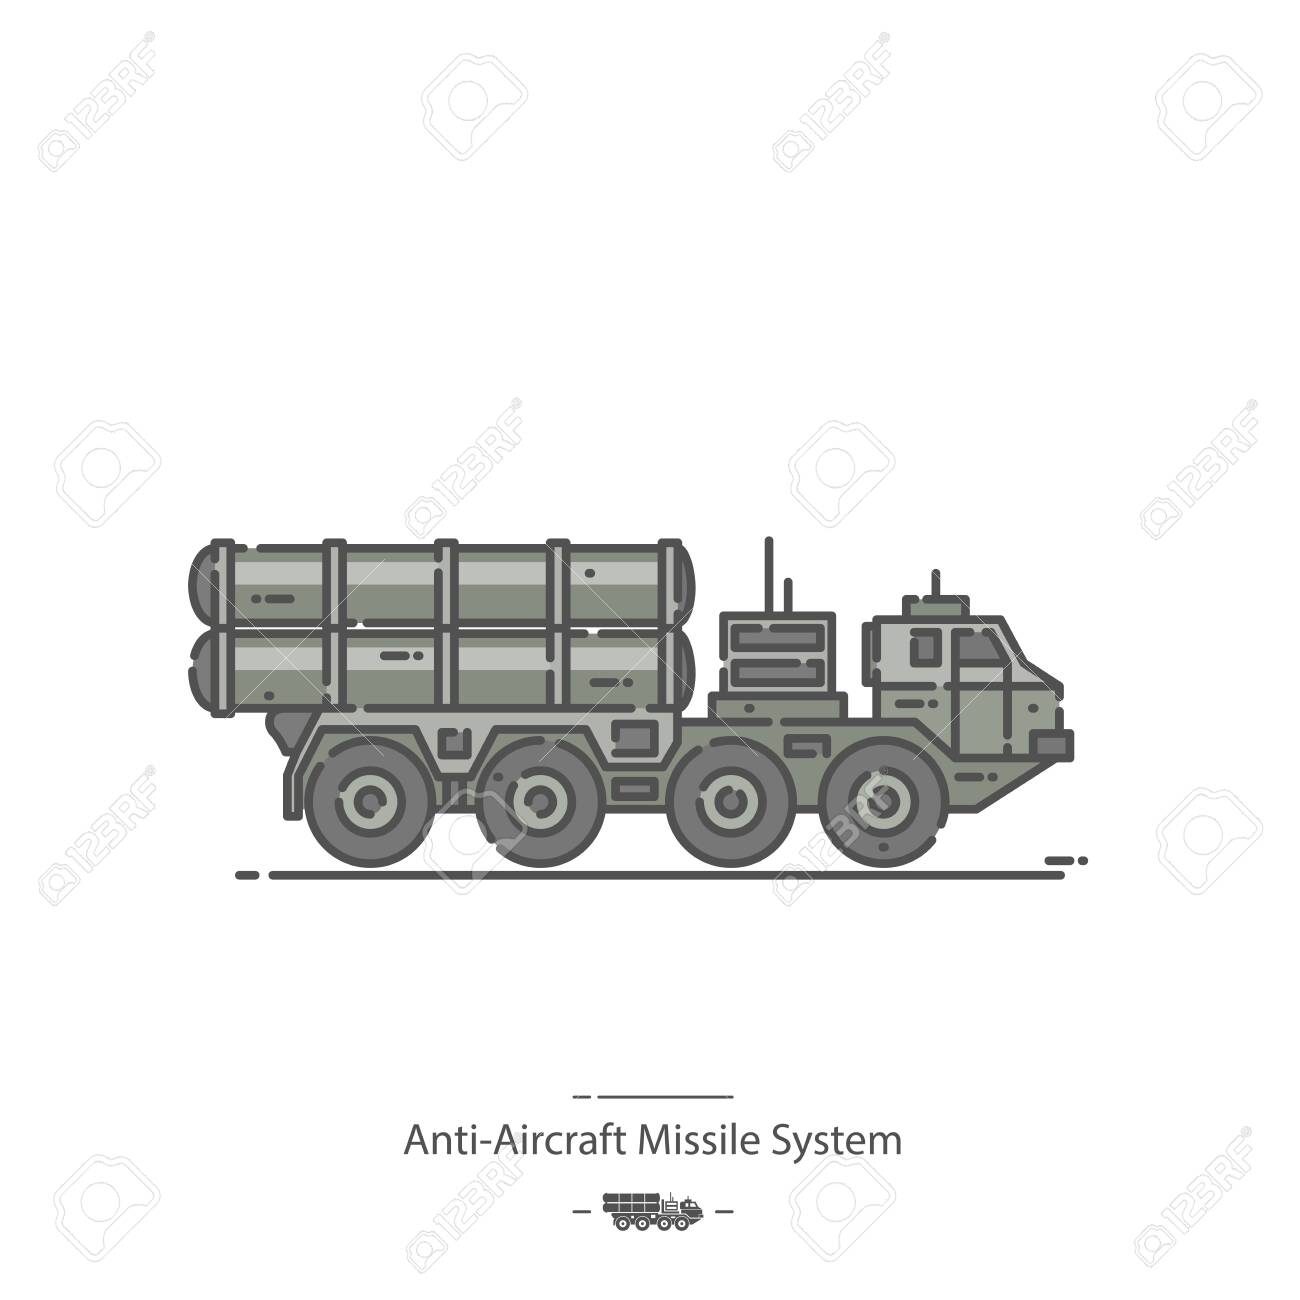 Anti-Aircraft Missile System - Line color icon - 138080430